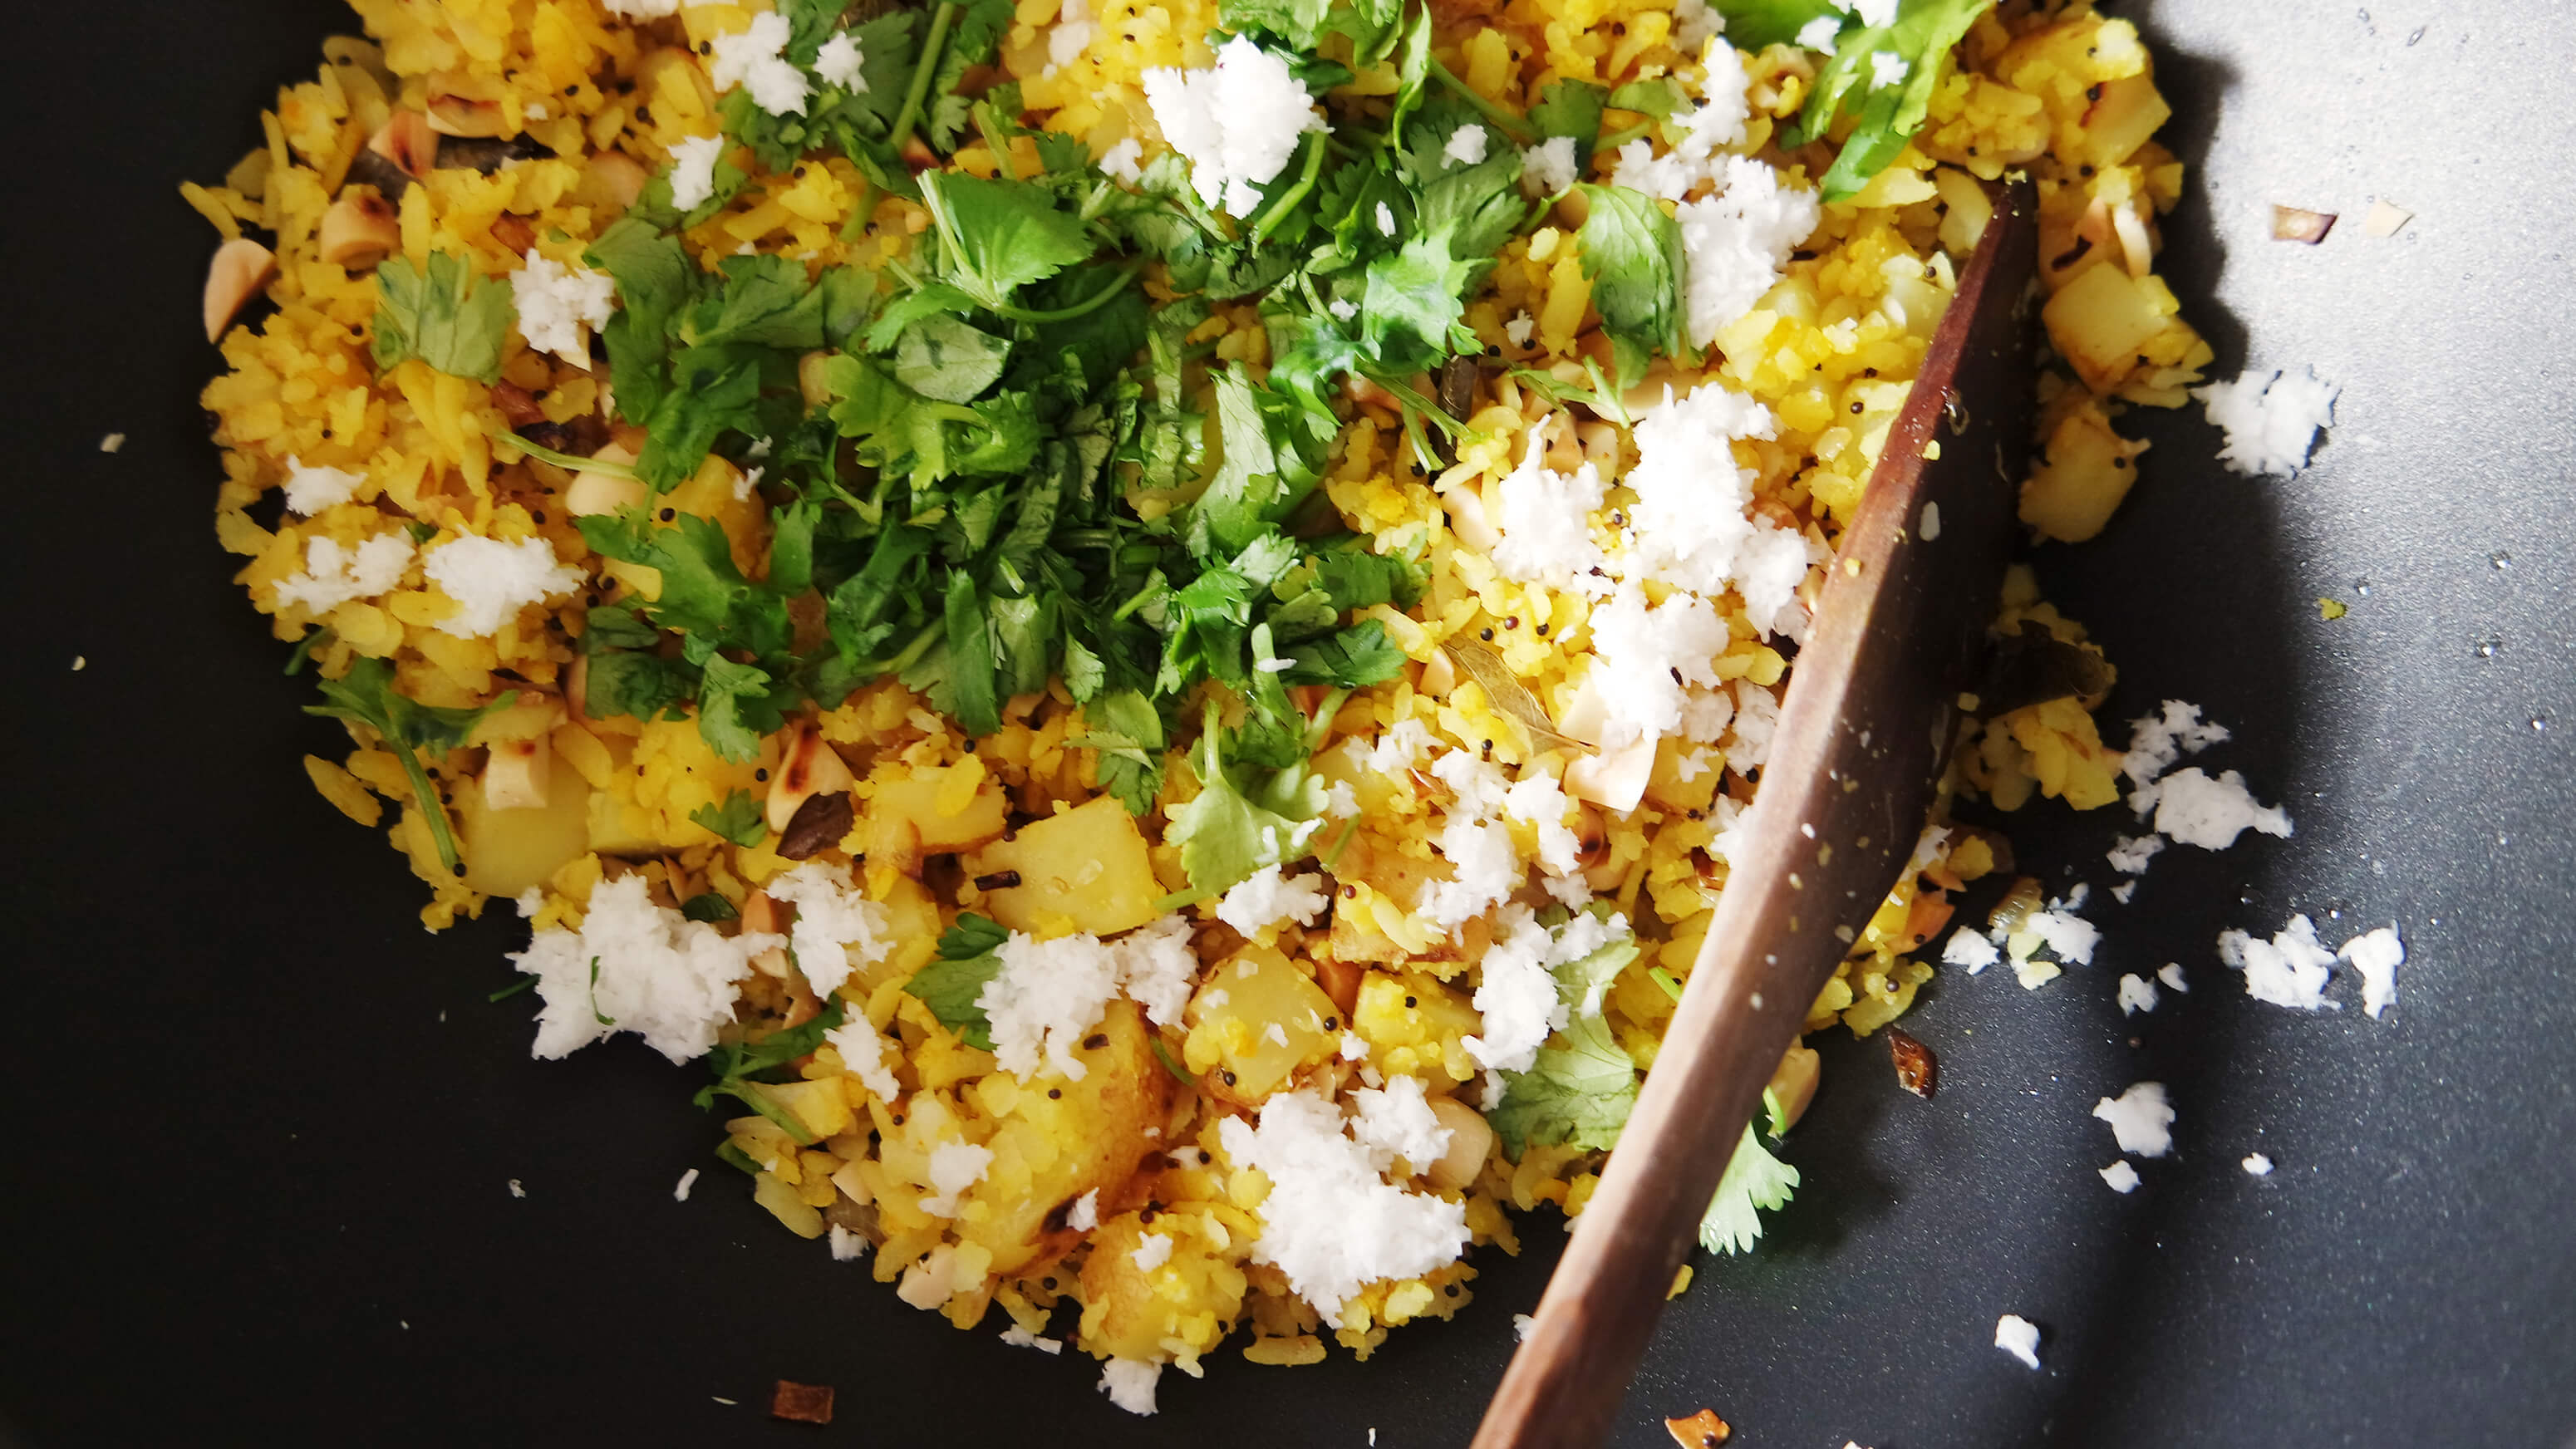 closeup of poha or beaten rice flakes with coriander leaves, fresh coconut and peanuts in a black wok with a wooden cooking spoon